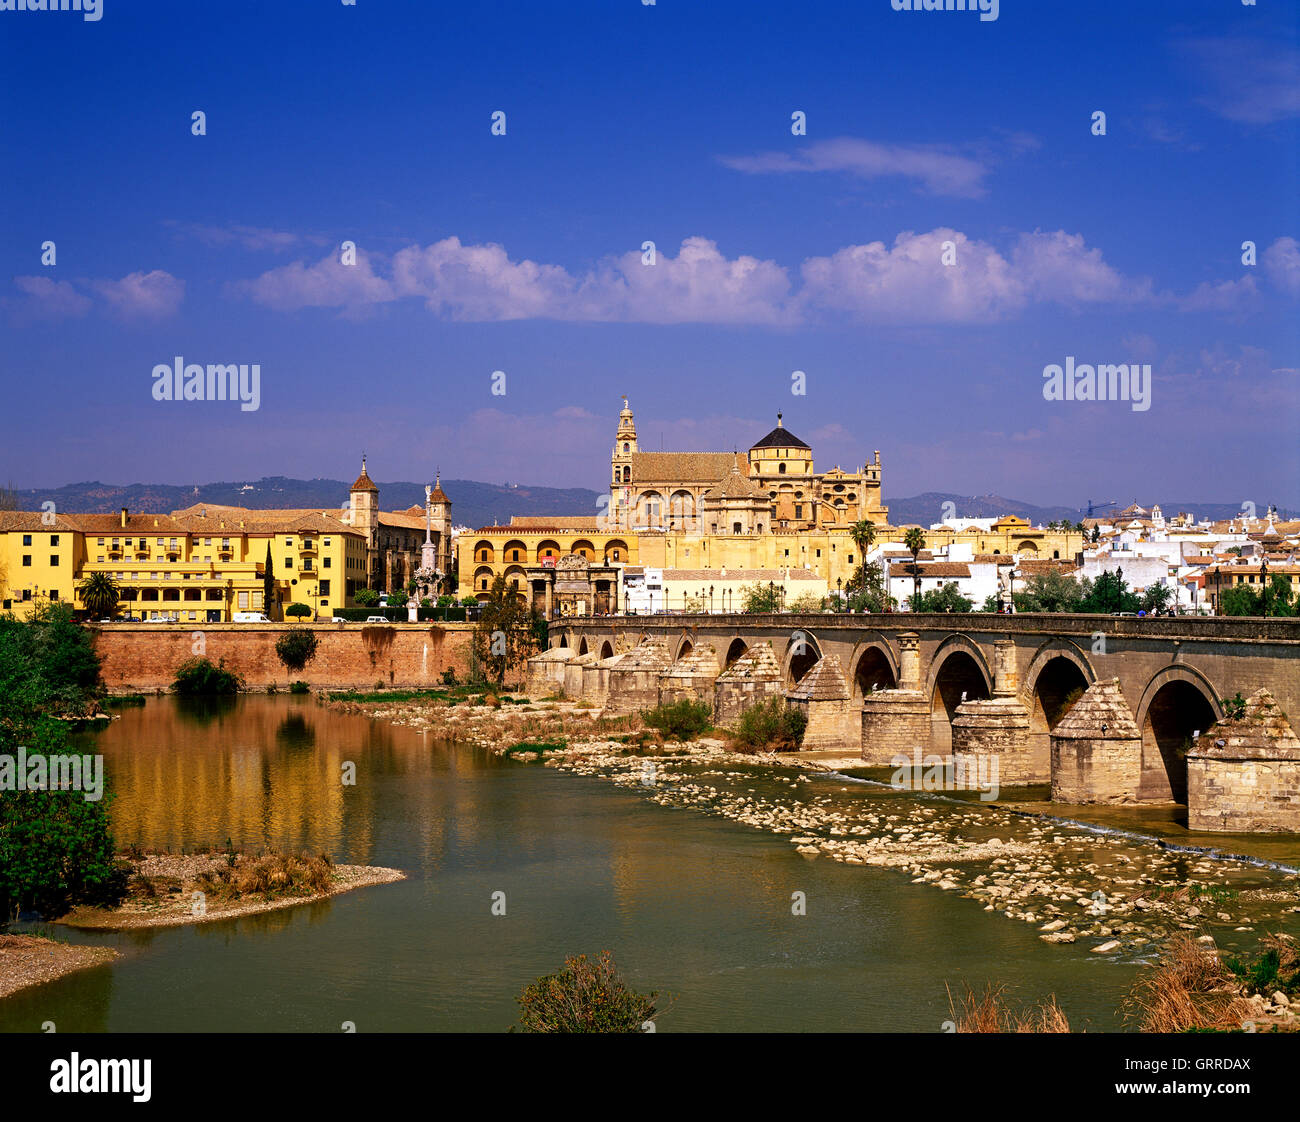 Roman Bridge and Cathedral, Cordoba, Andalucia, Spain - Stock Image